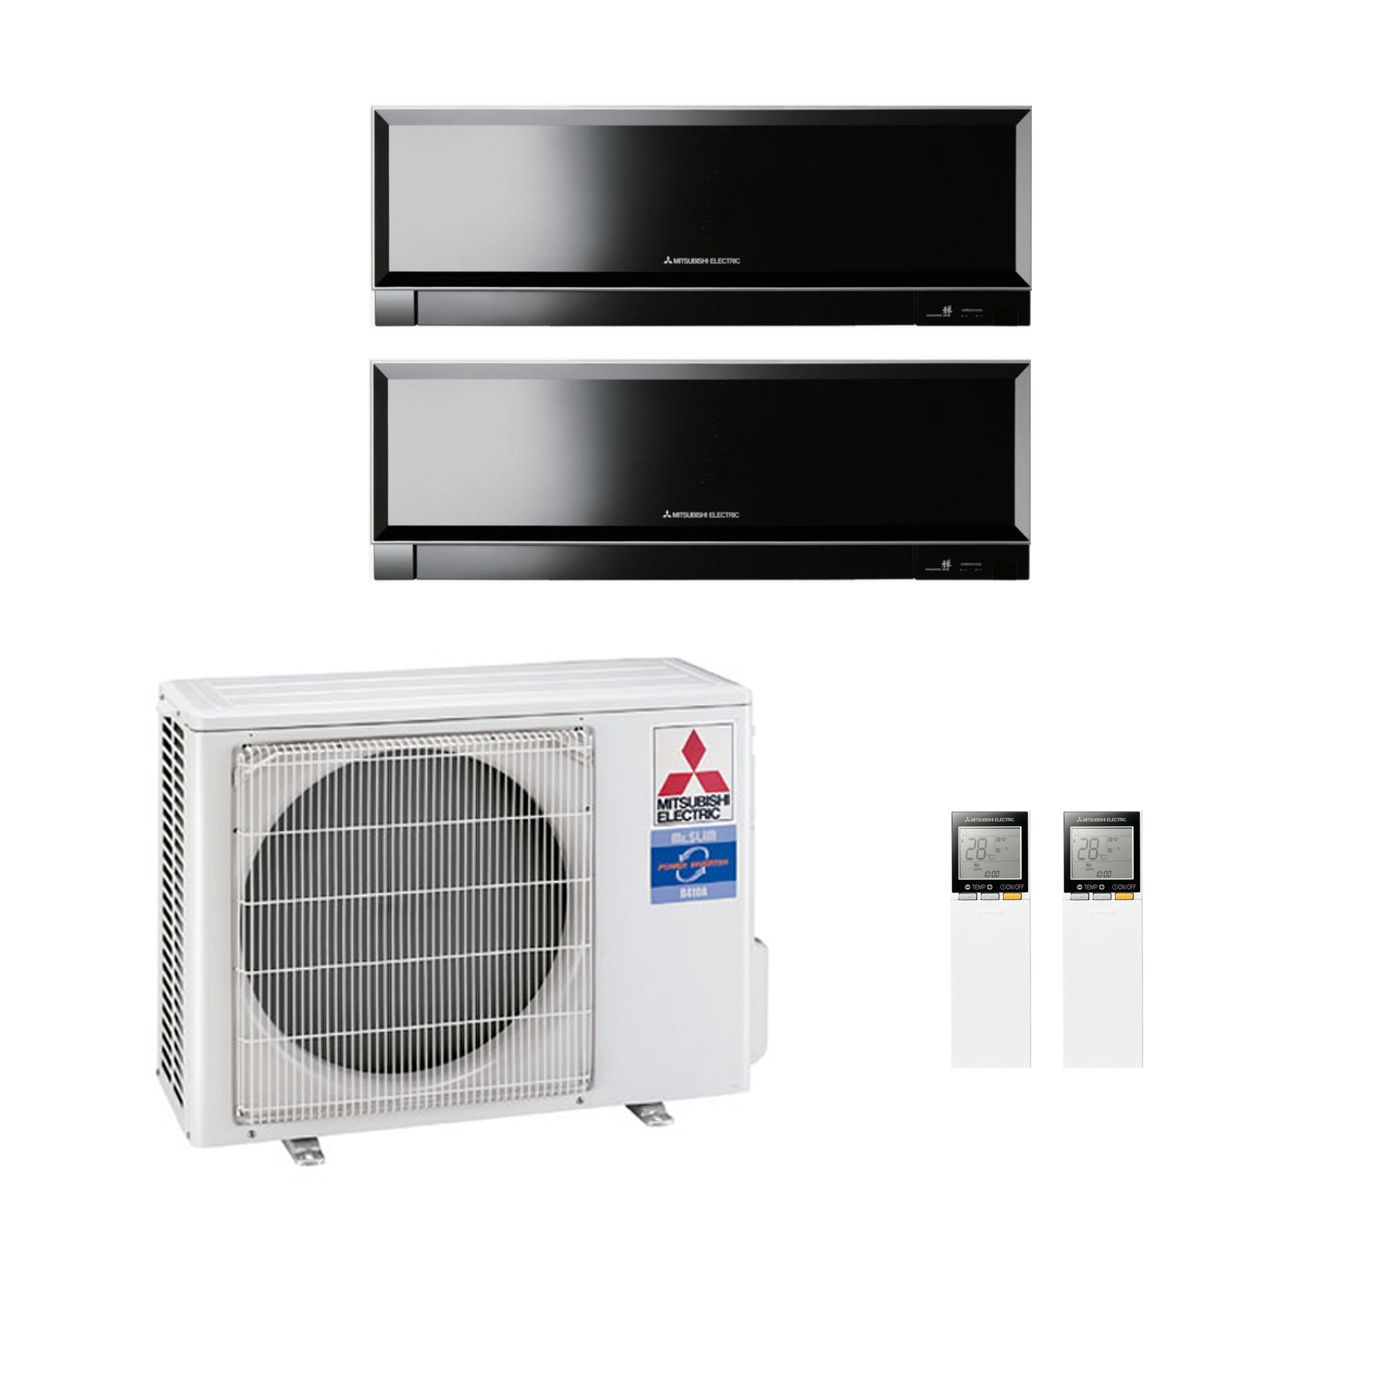 Mitsubishi Electric Air Conditioning MXZ 2D53VA 2 X 3.5Kw Zen Multi Room  Wall Air Conditioning A 240V~50Hz